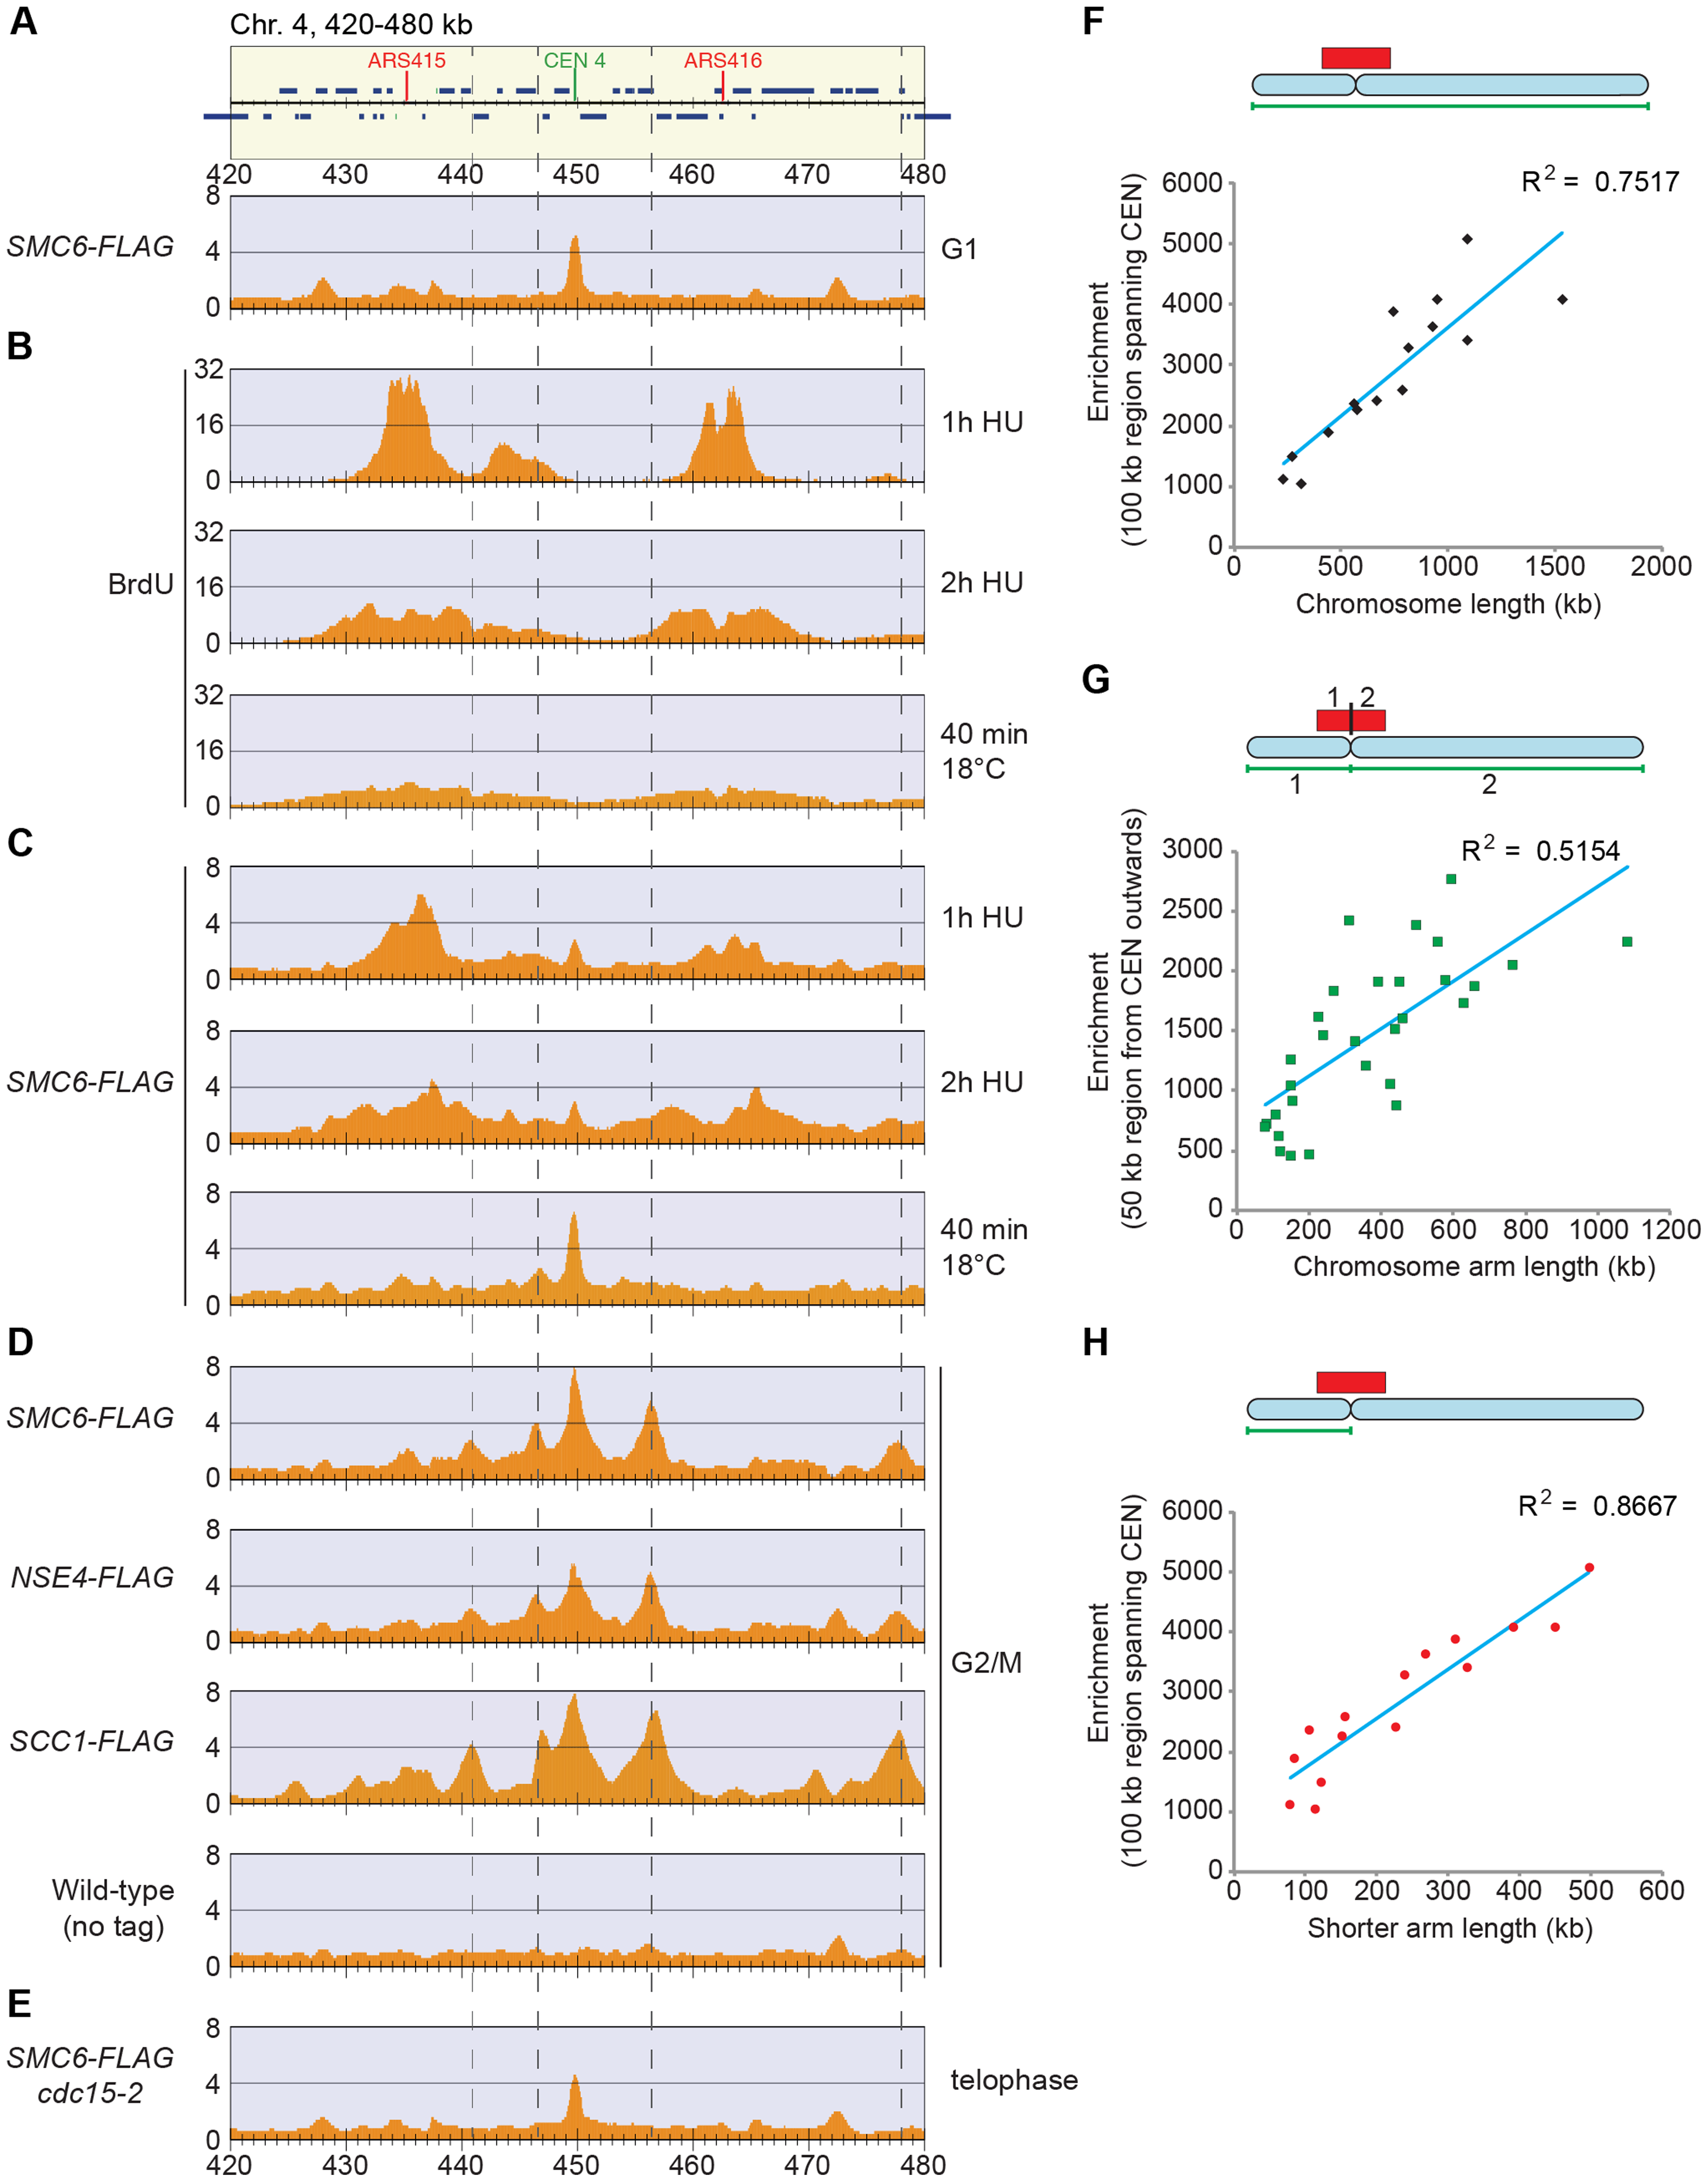 Smc5/6 is enriched on replicated chromosomes in between convergently transcribed genes close to centromeres, and the level of enrichment increases if the centromeres are distant from a chromosome end.